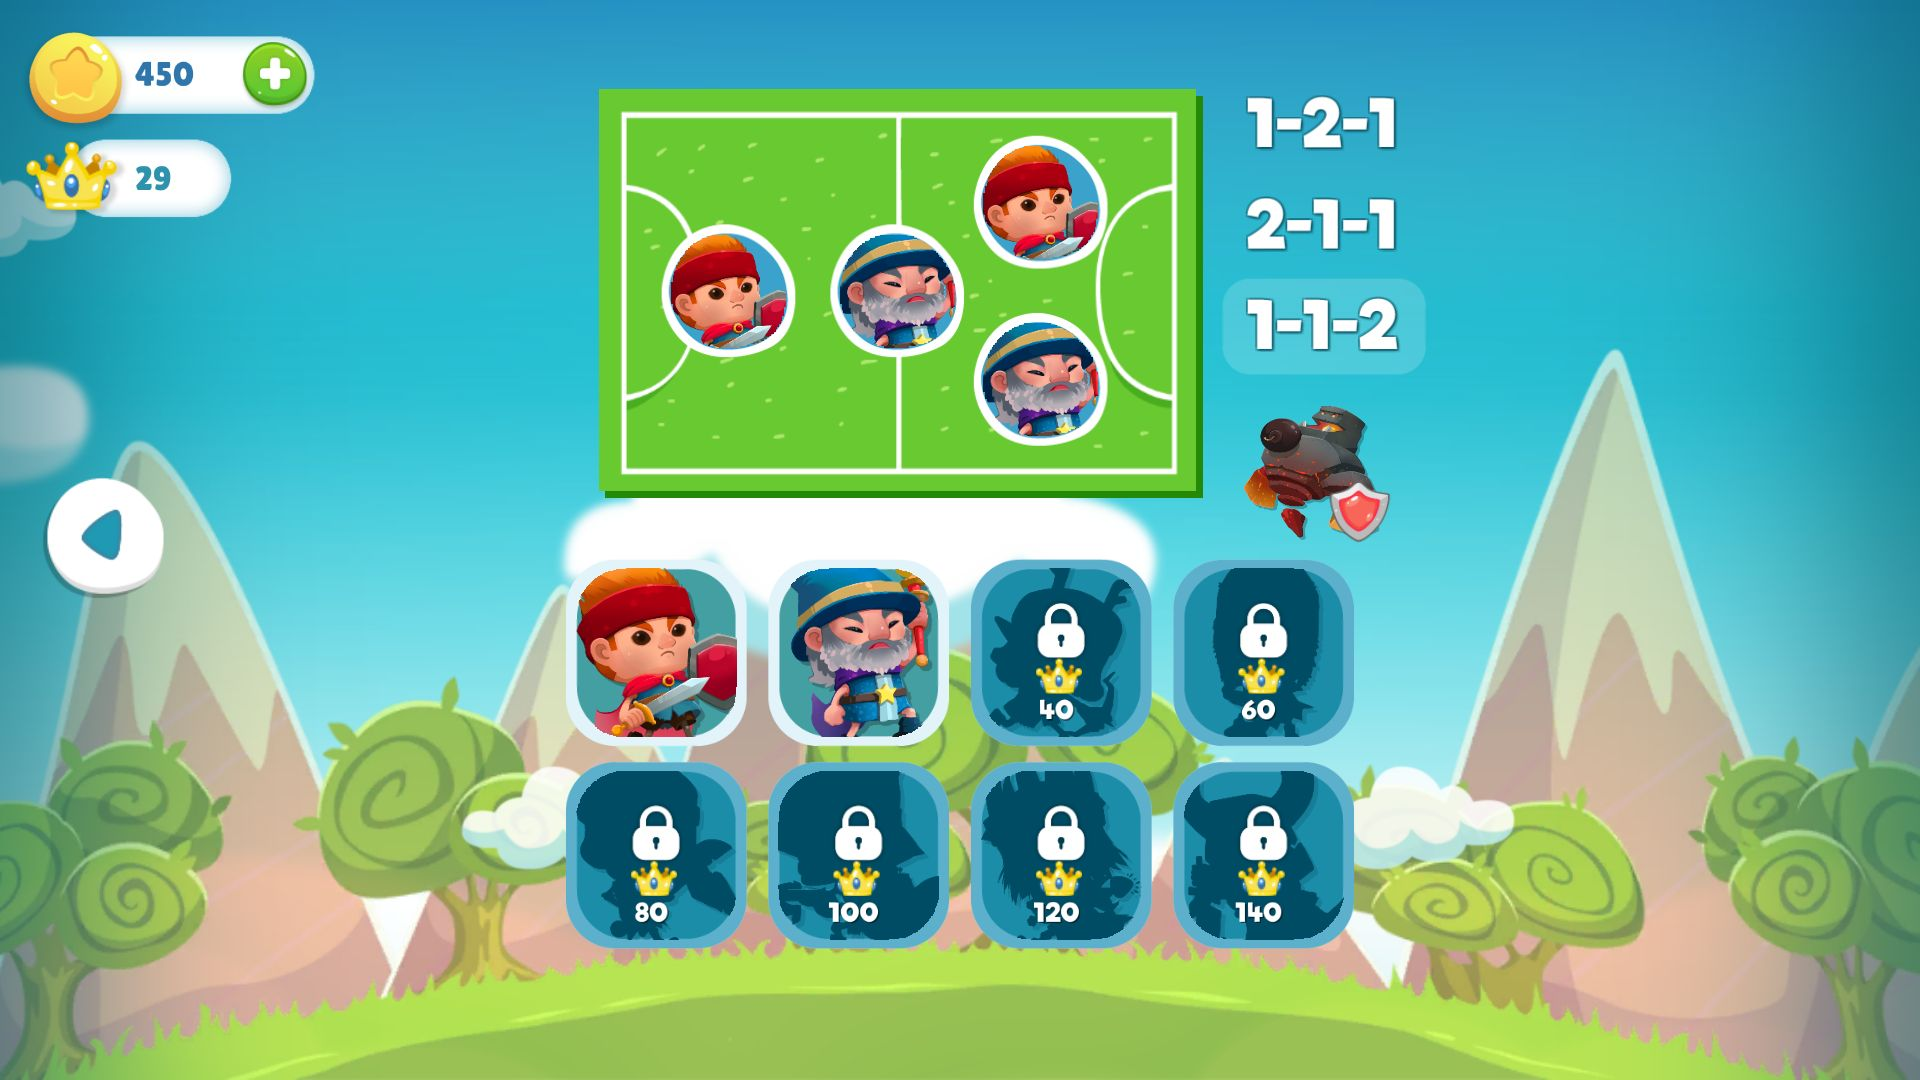 WIF Soccer Battles androidアプリスクリーンショット3